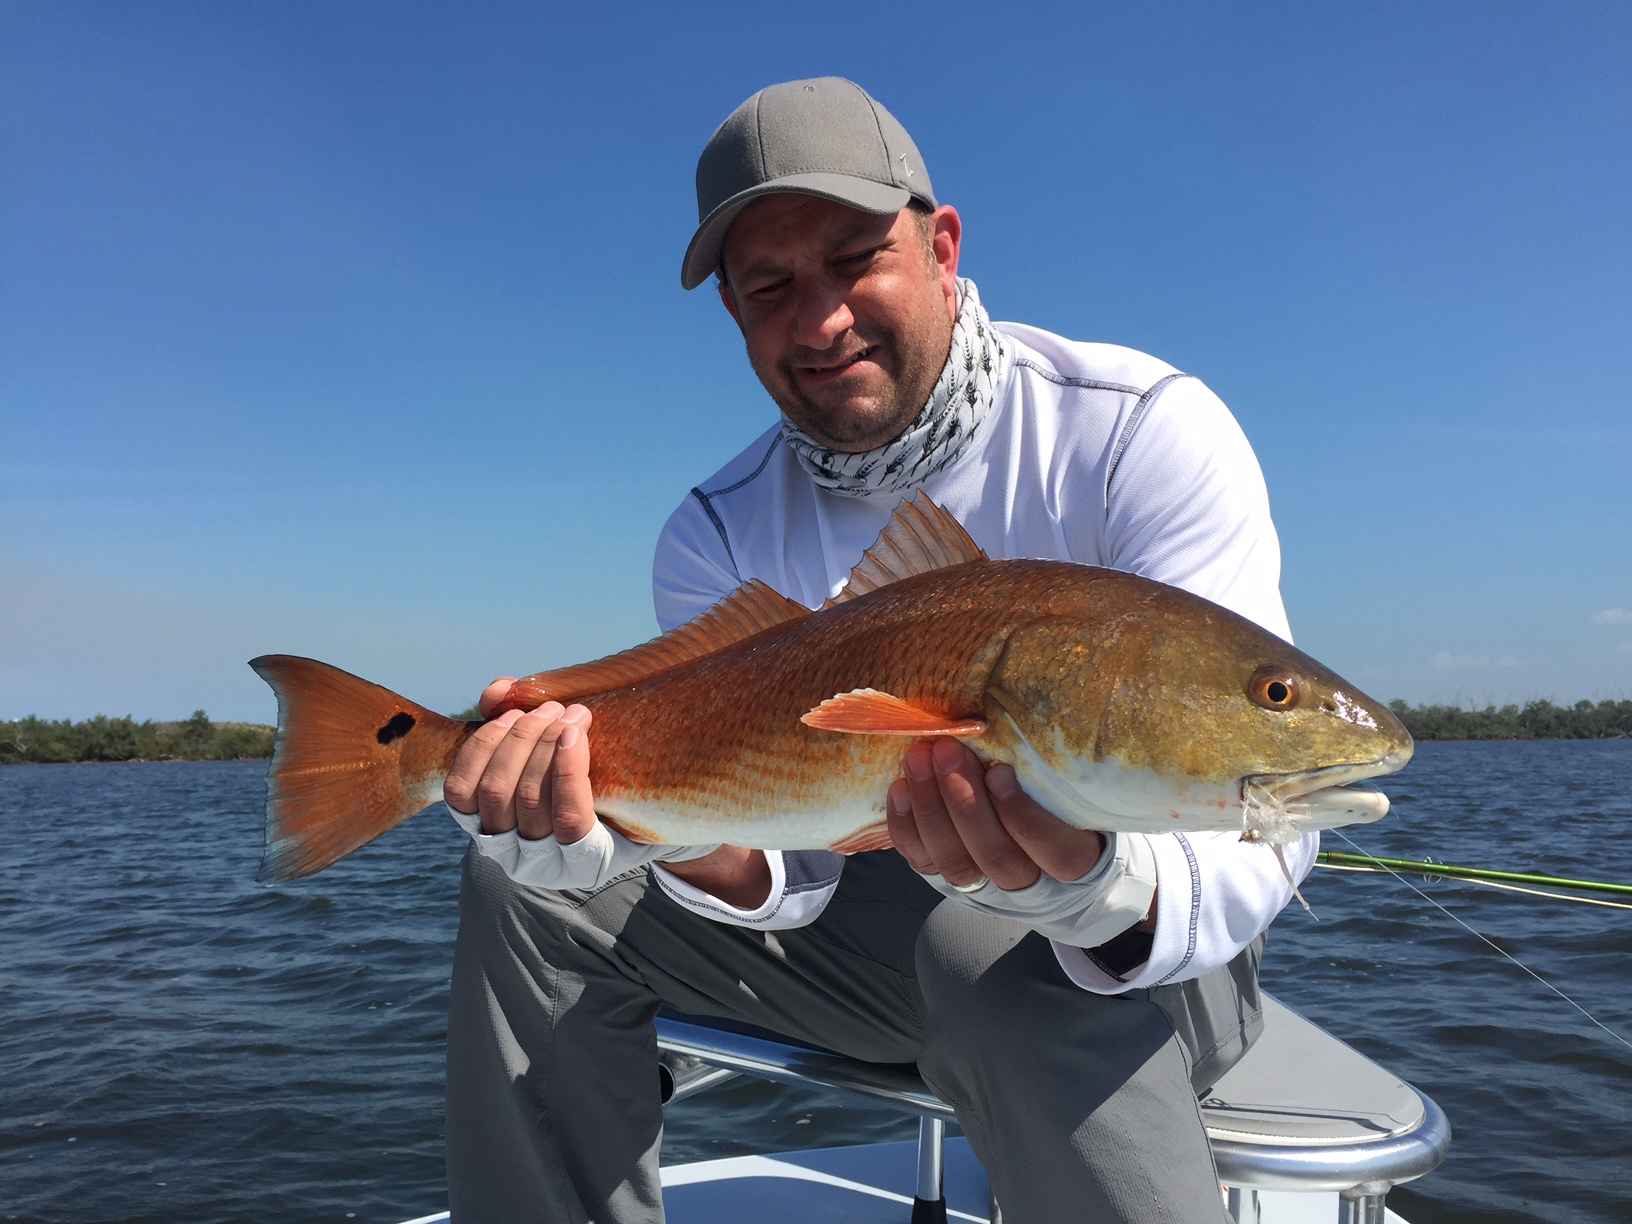 Max Salzburg with a redfish in Mosquito Lagoon. Photo by Bruce Salzburg.